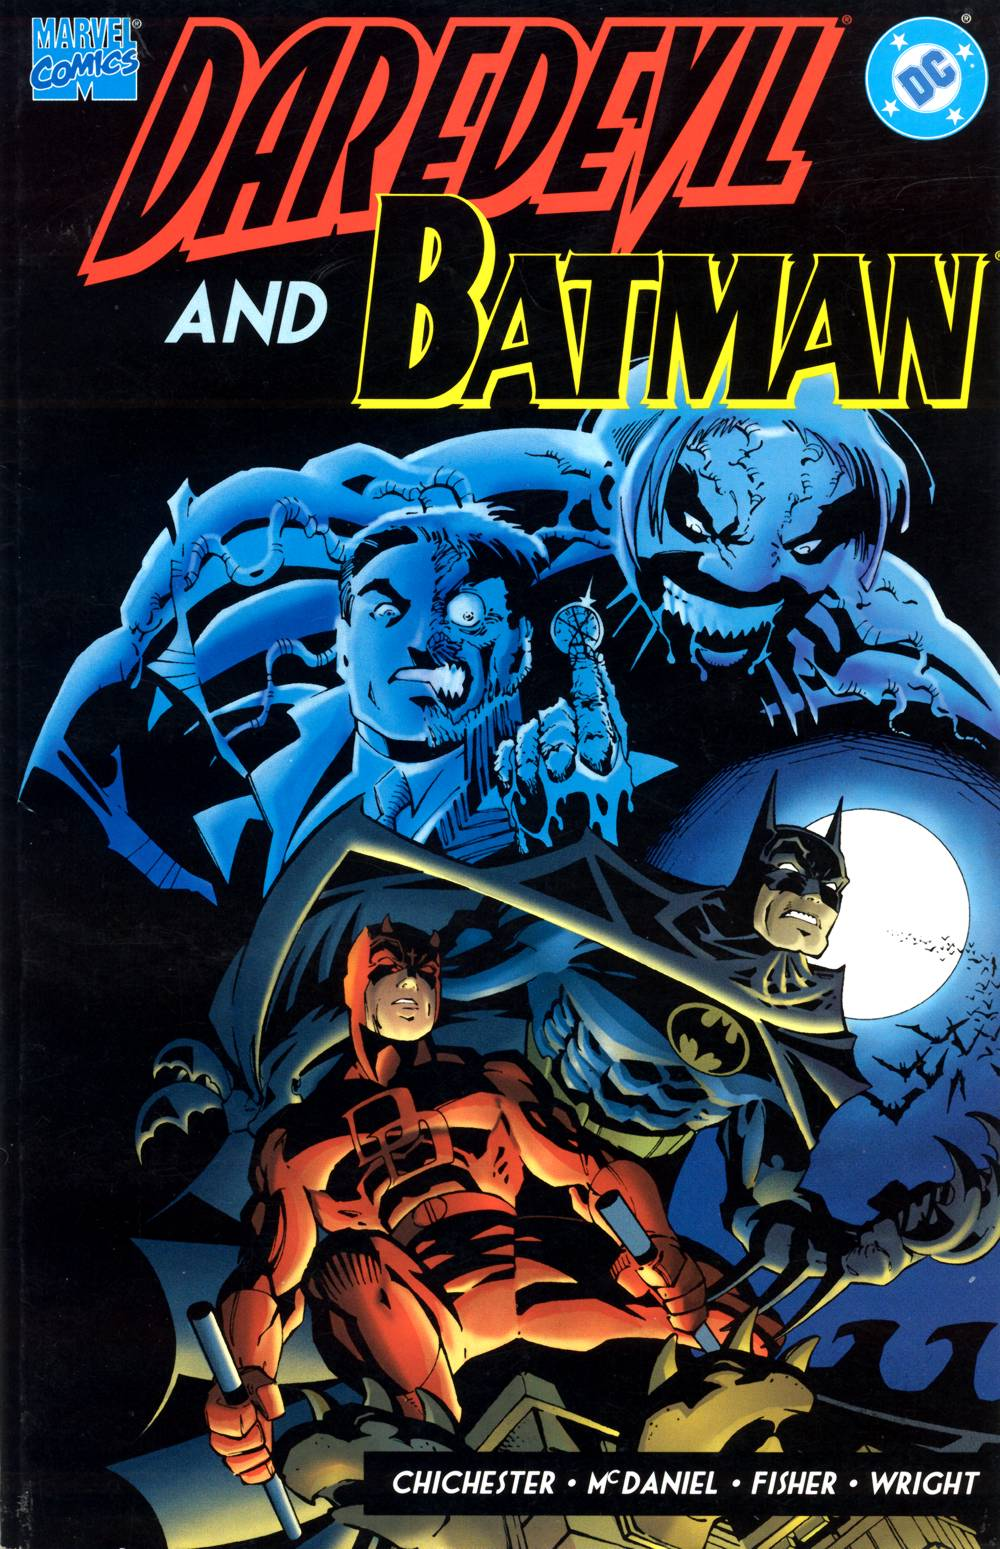 File:Daredevil Batman Vol 1 1.jpg